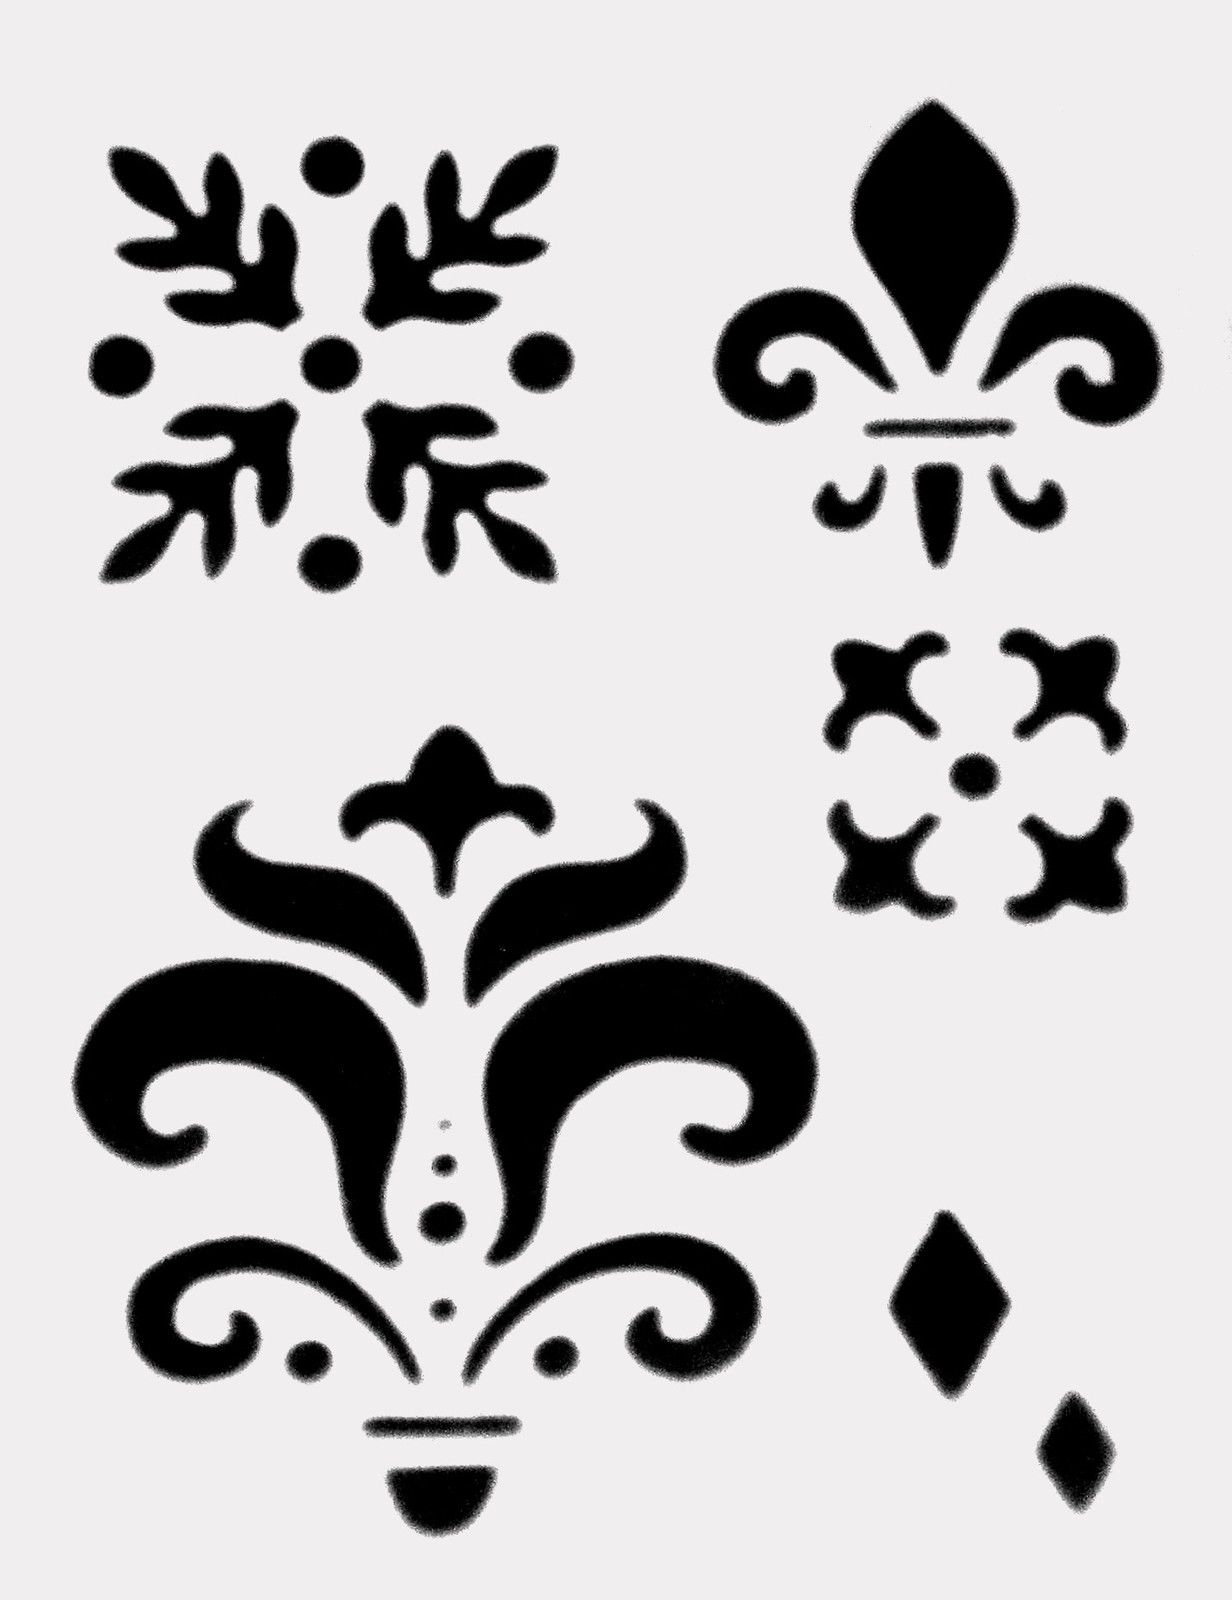 Free Saints Fleur De Lis Stencil Download Free Clip Art